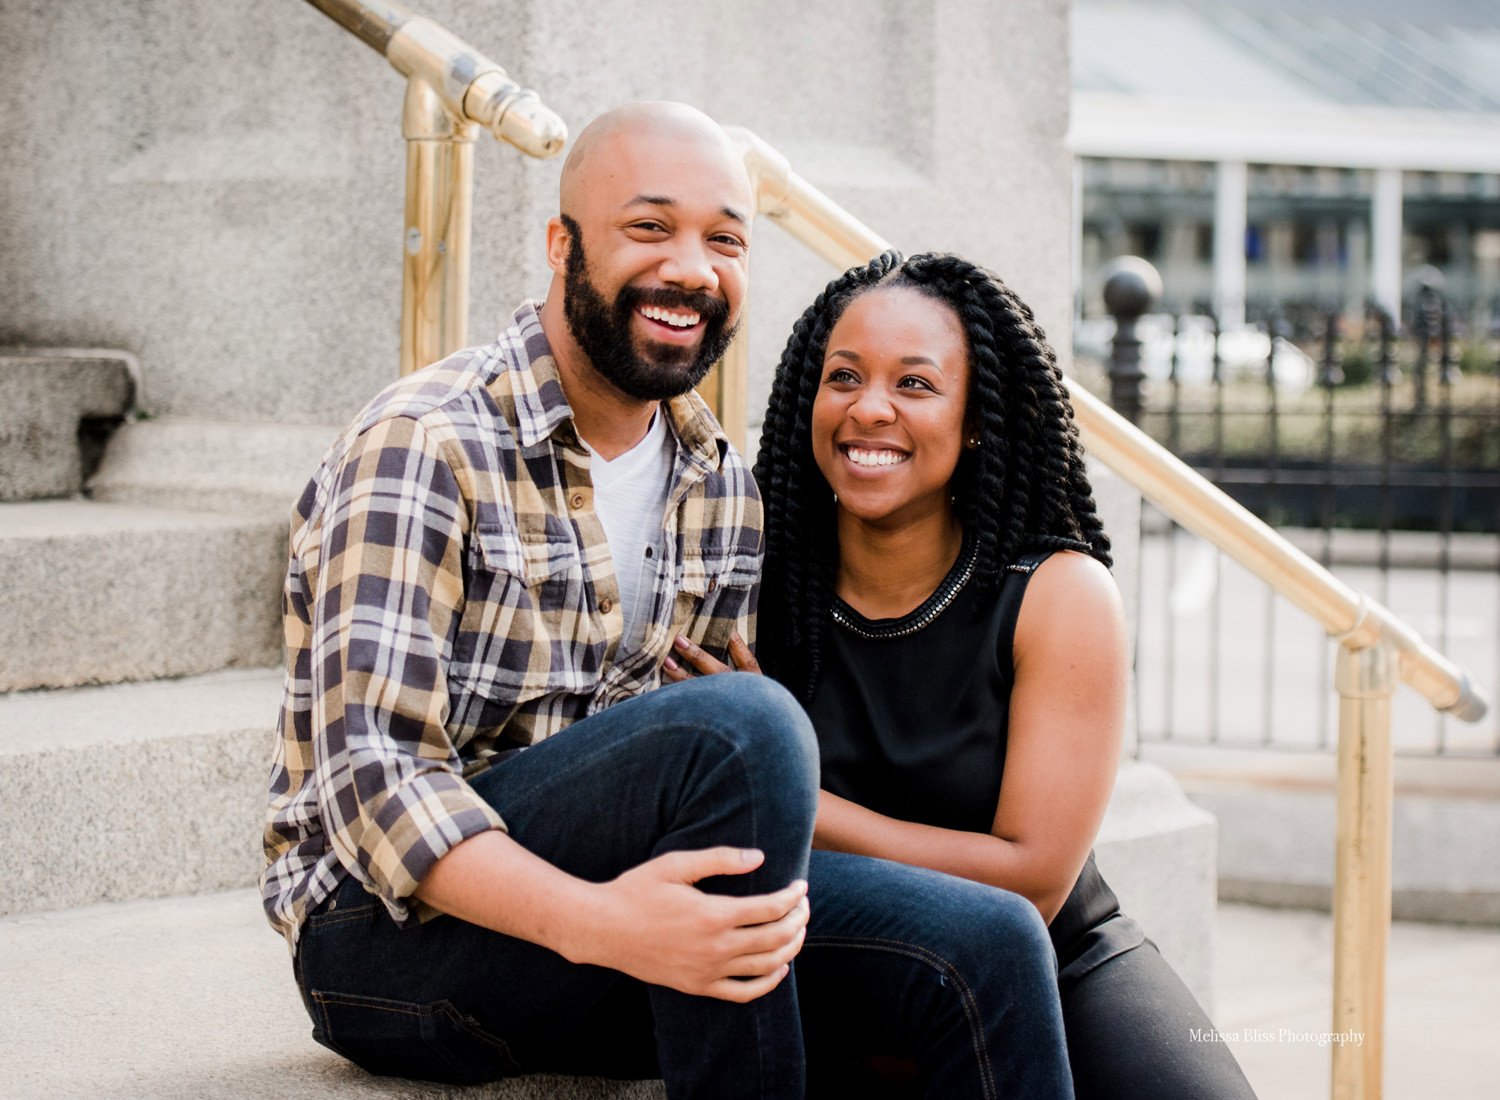 photos-of-engaged-couple-downtown-norfolk-city-district-melissa-bliss-photography.jpg